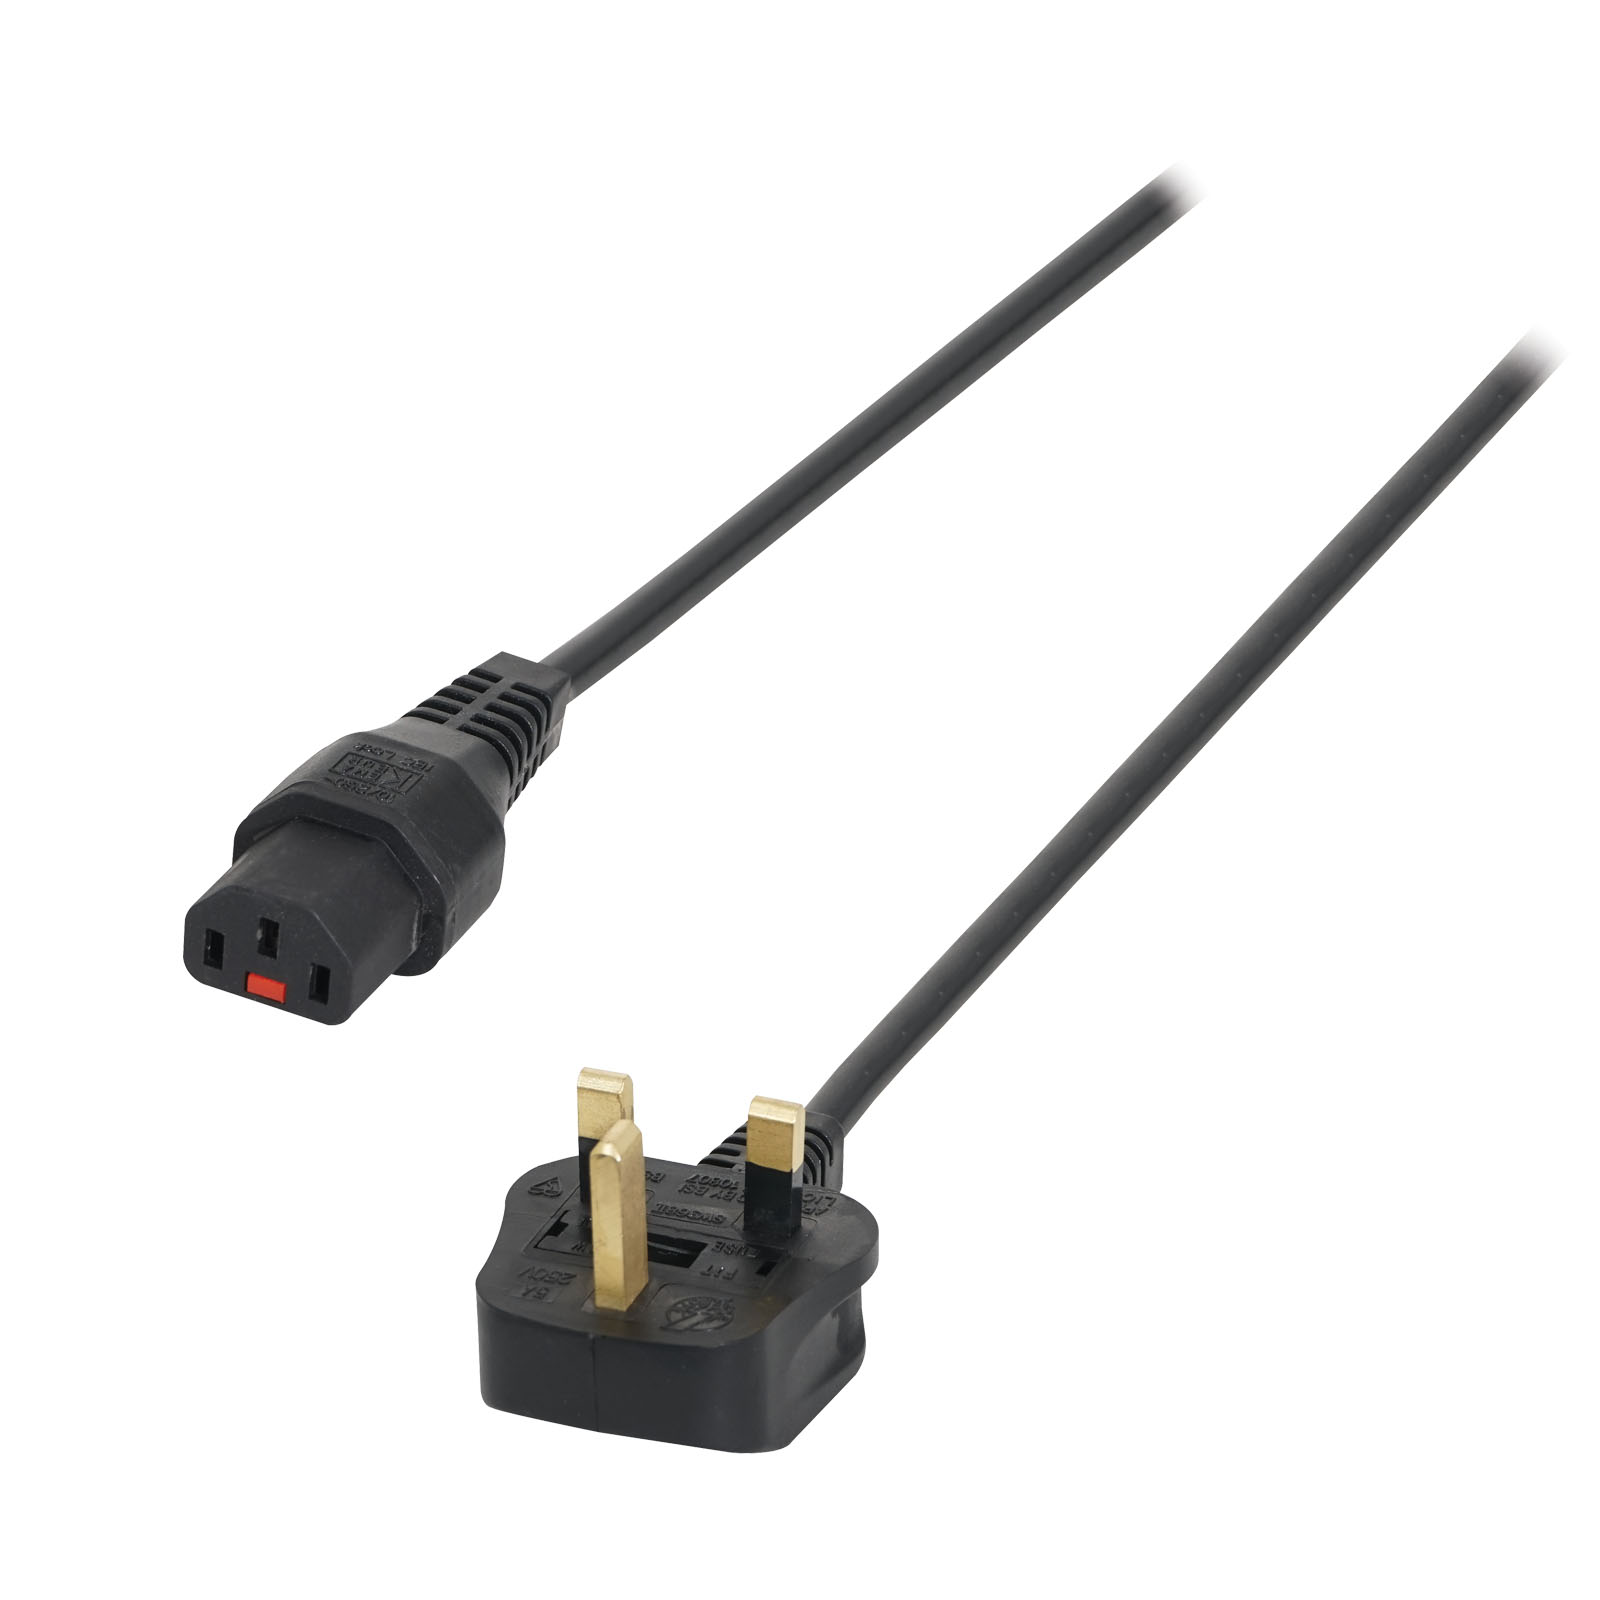 3m 13A – C13 IEC Lock Cable (5A Fuse) PC936